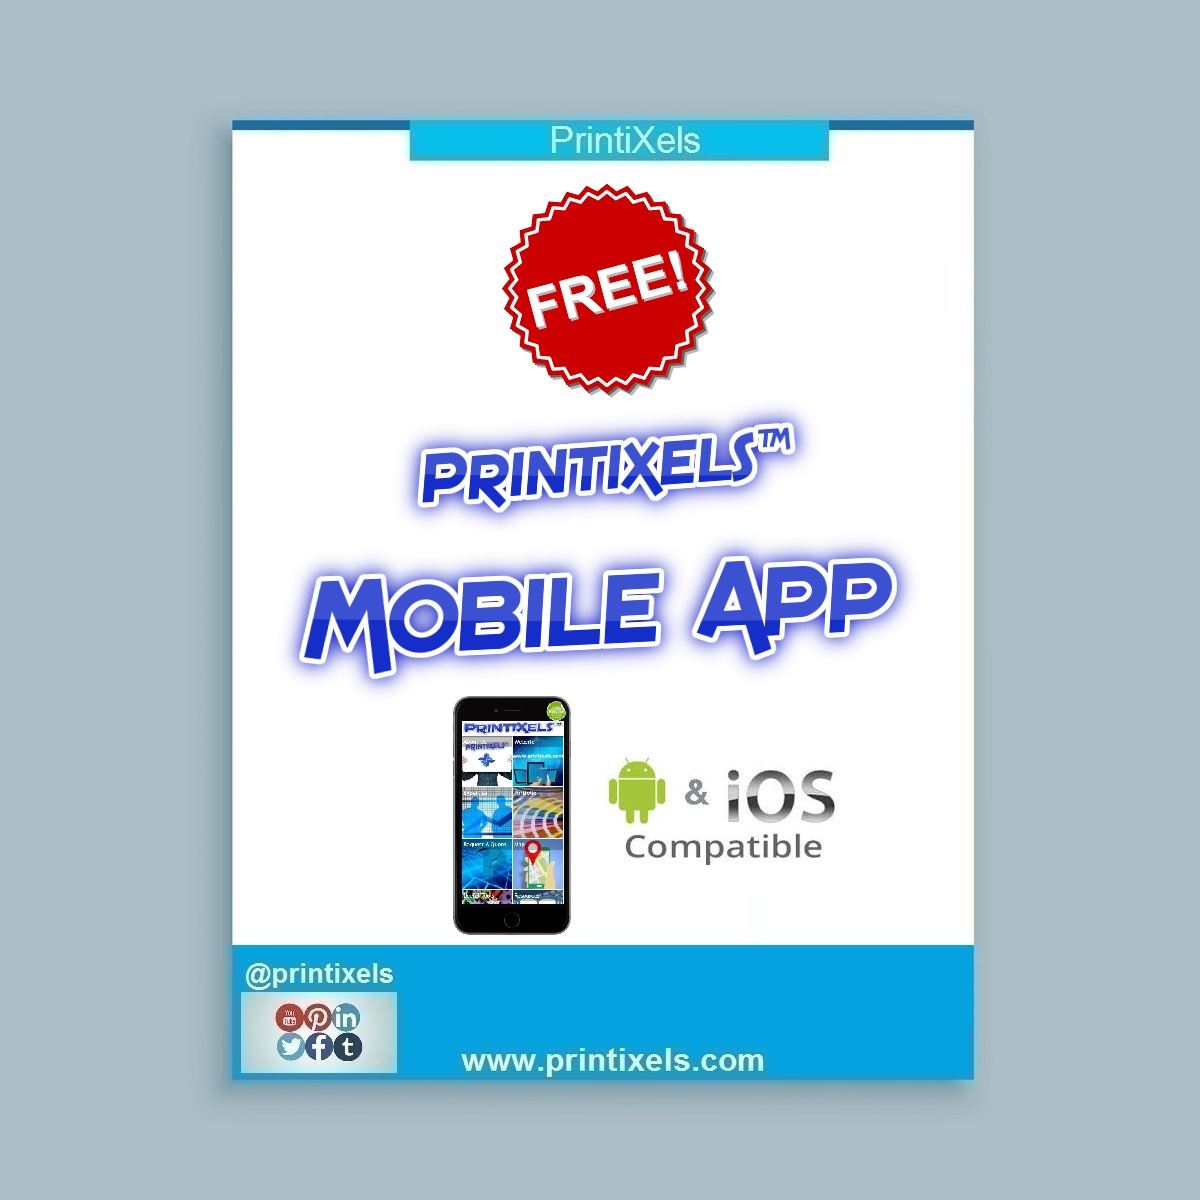 Free Printixels Mobile App Launched